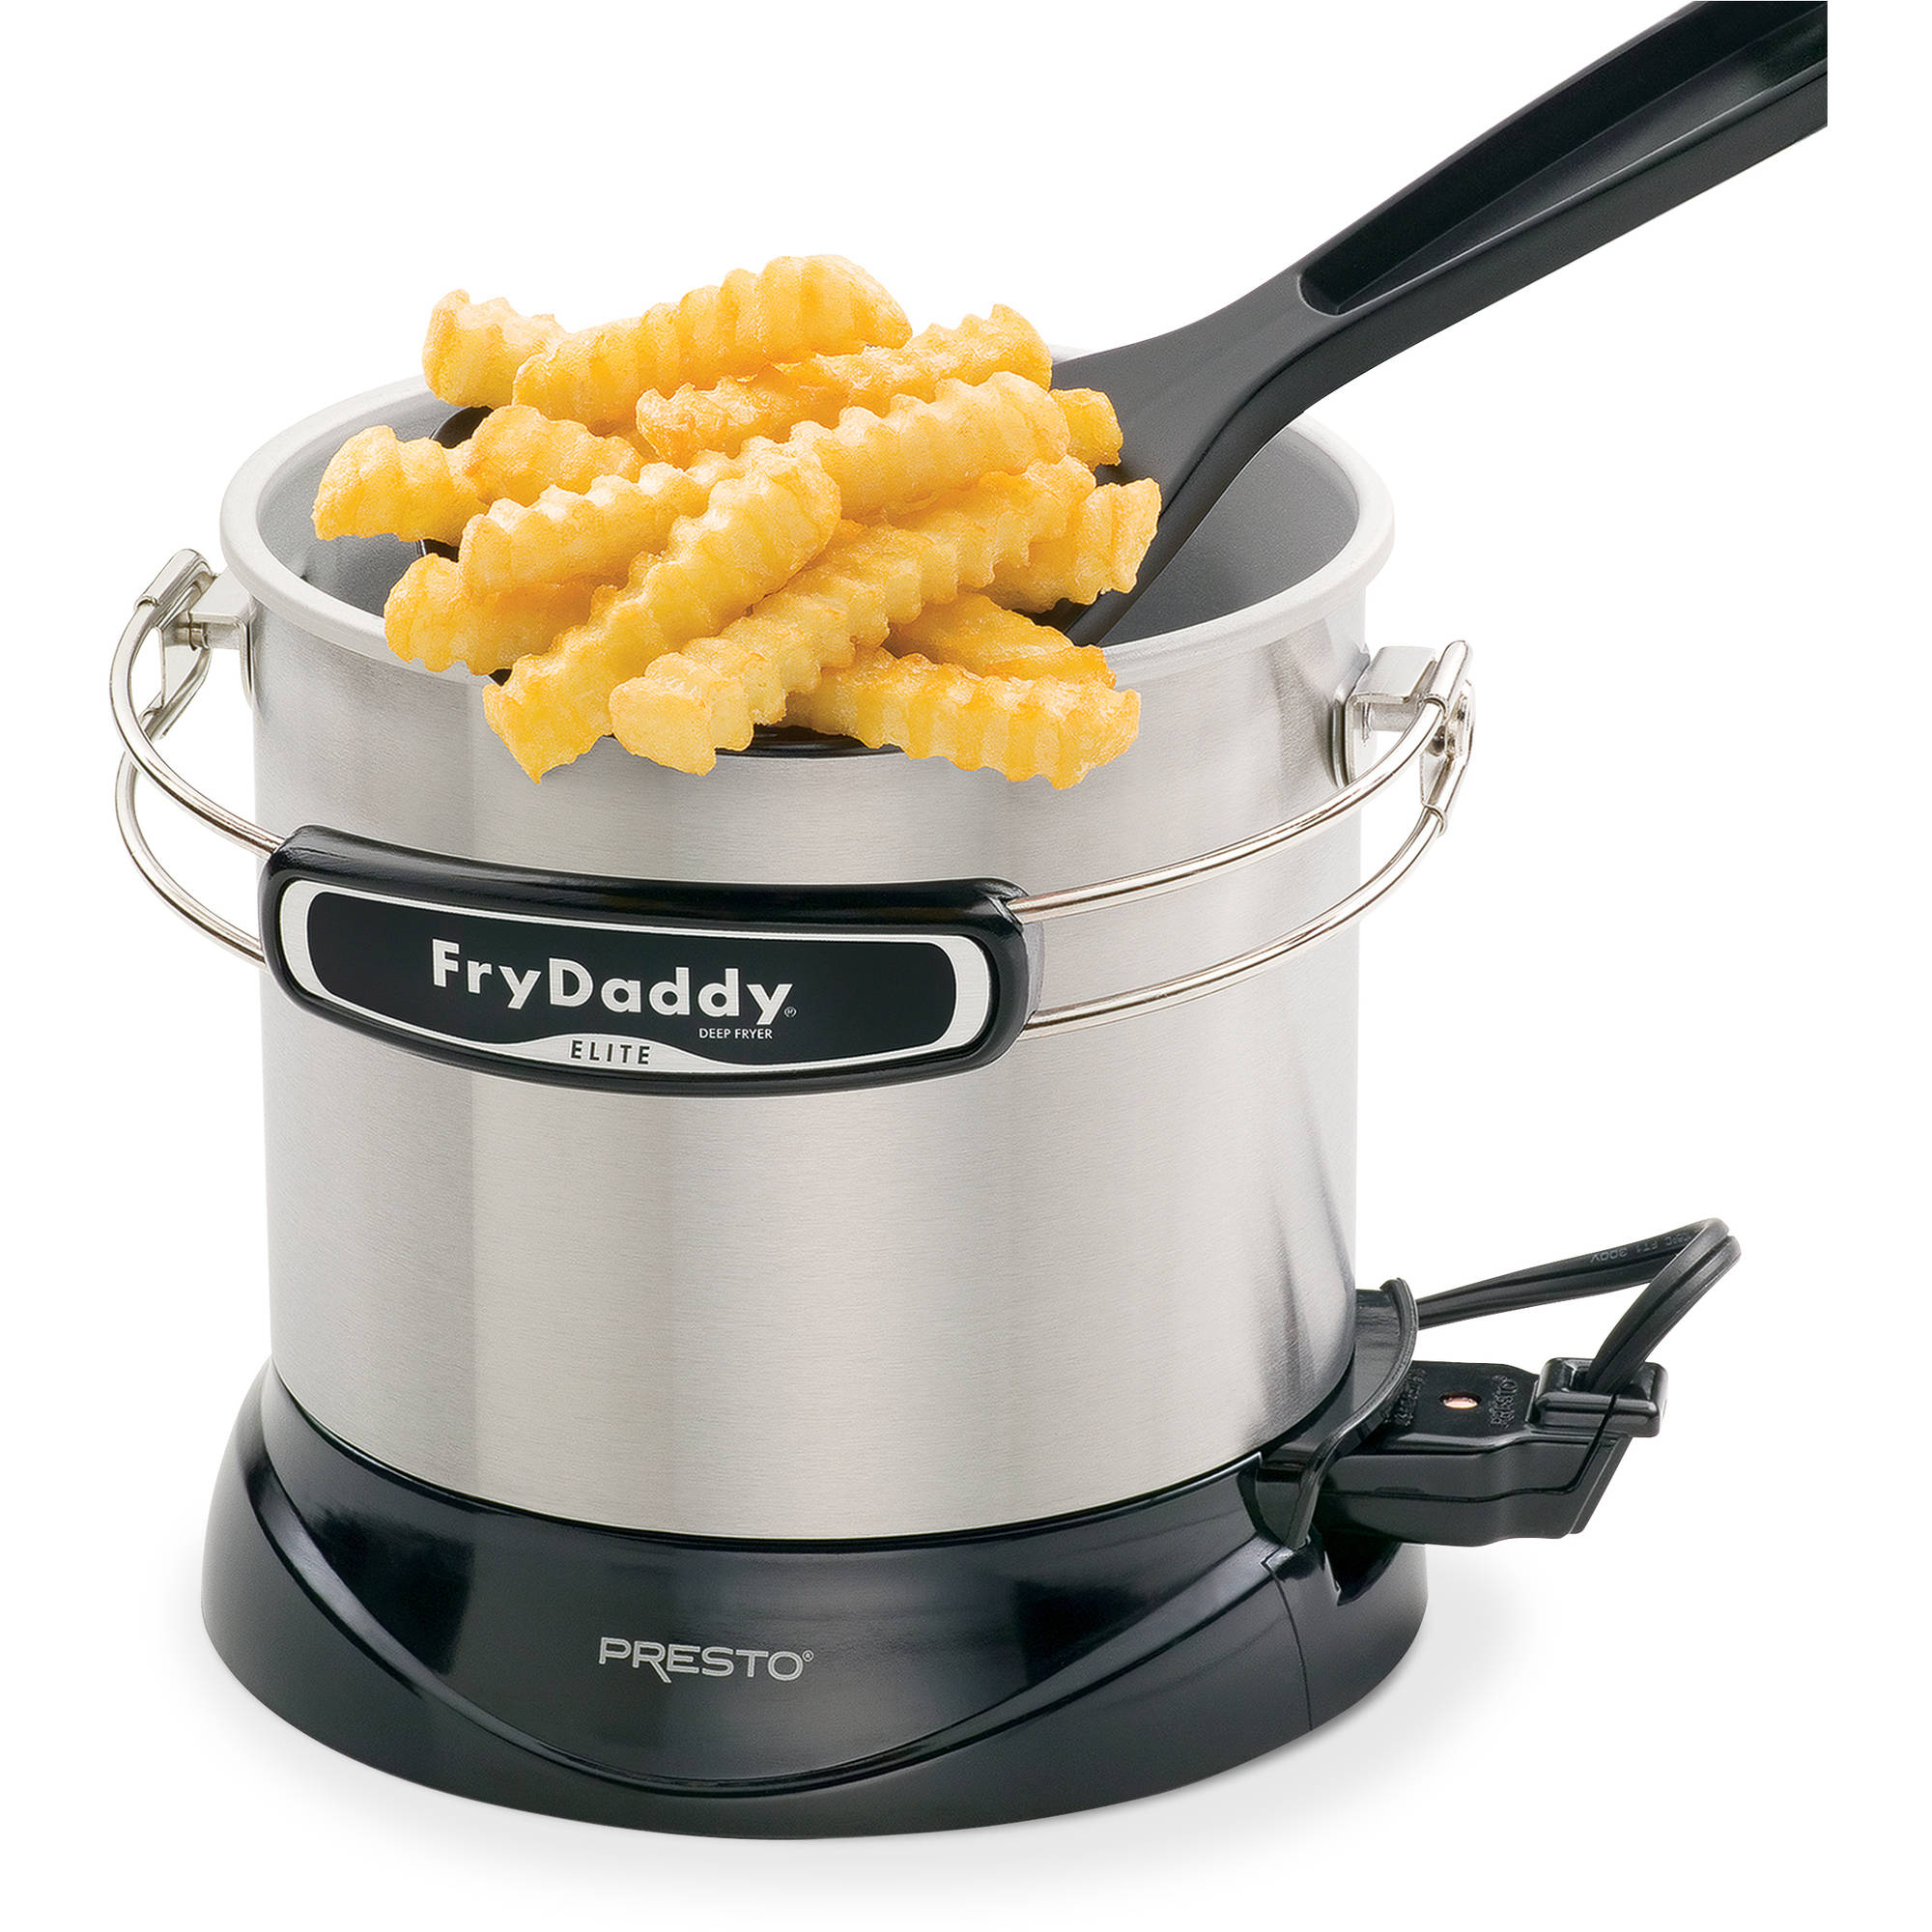 Presto FryDaddy Elite 4-Cup Electric Deep Fryer